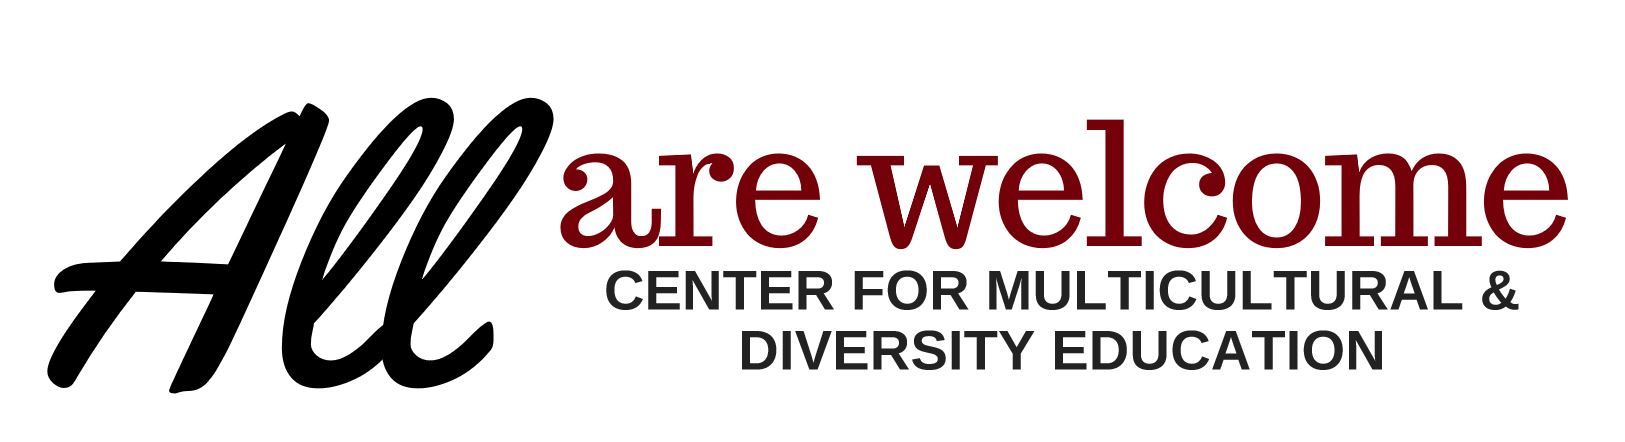 All are Welcome at the Center for Multicultural and Diversity Education